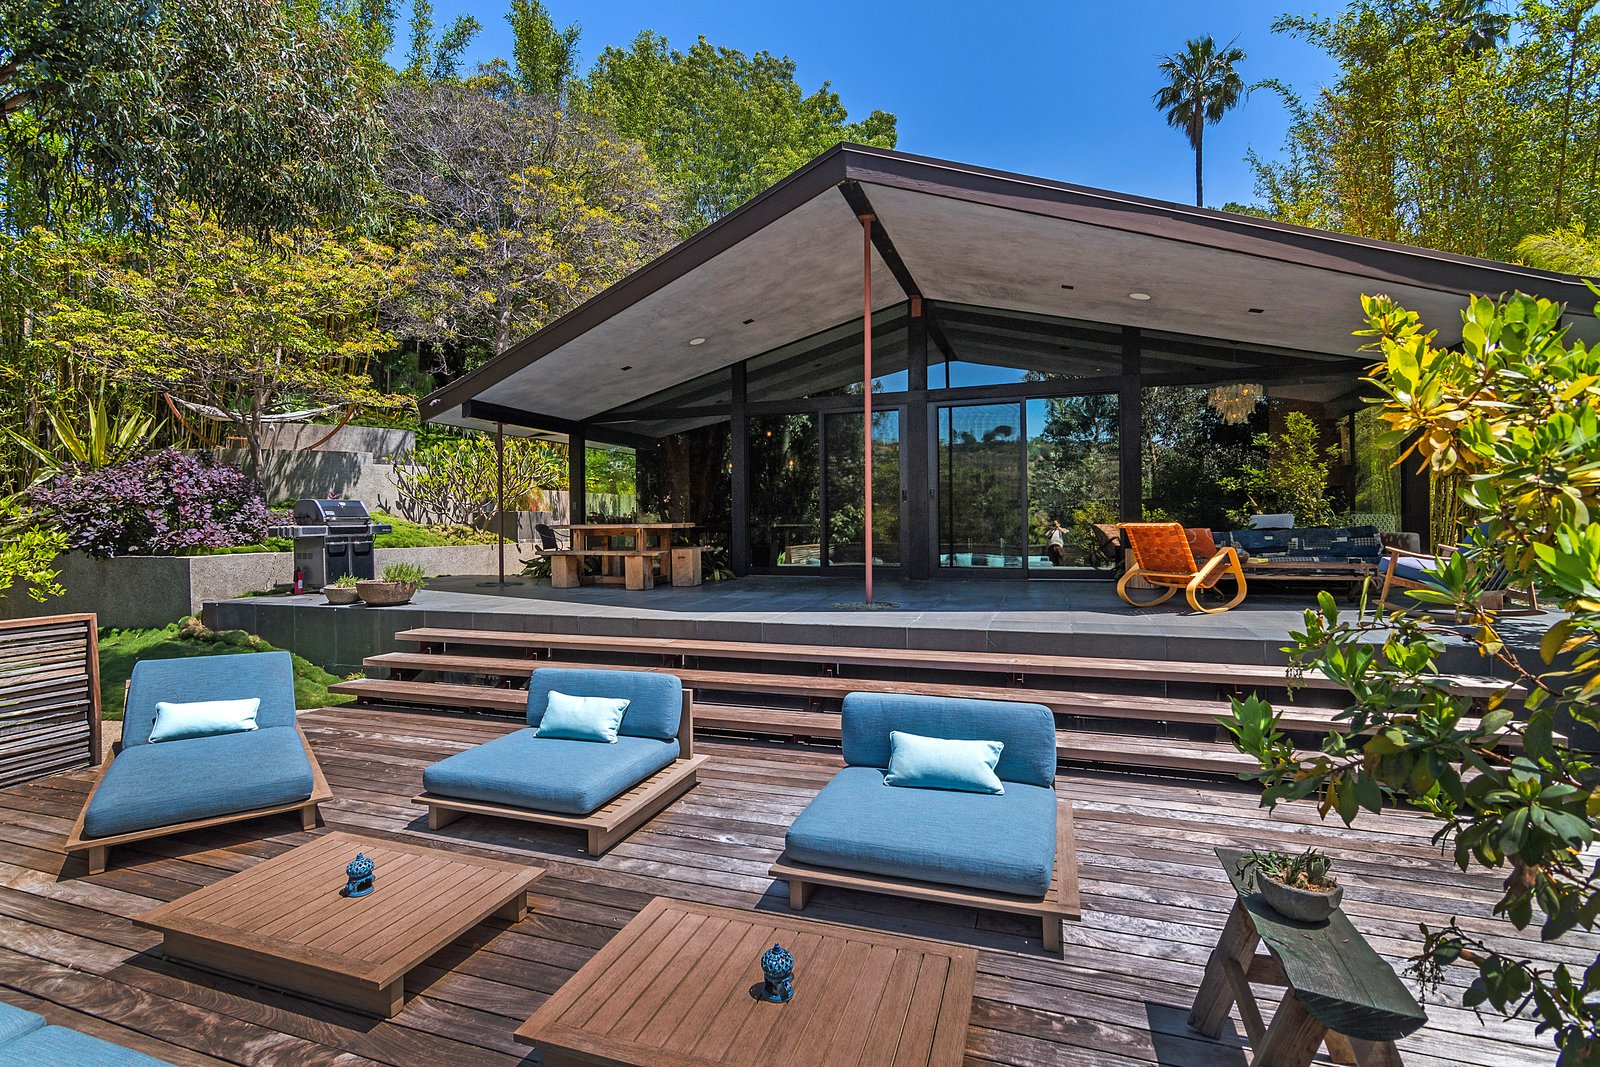 Tagged: Outdoor, Large Patio, Porch, Deck, Back Yard, Wood Patio, Porch, Deck, and Trees.  Photo 13 of 14 in John Legend and Chrissy Teigen's Former Midcentury Home in the Hollywood Hills Is For Sale